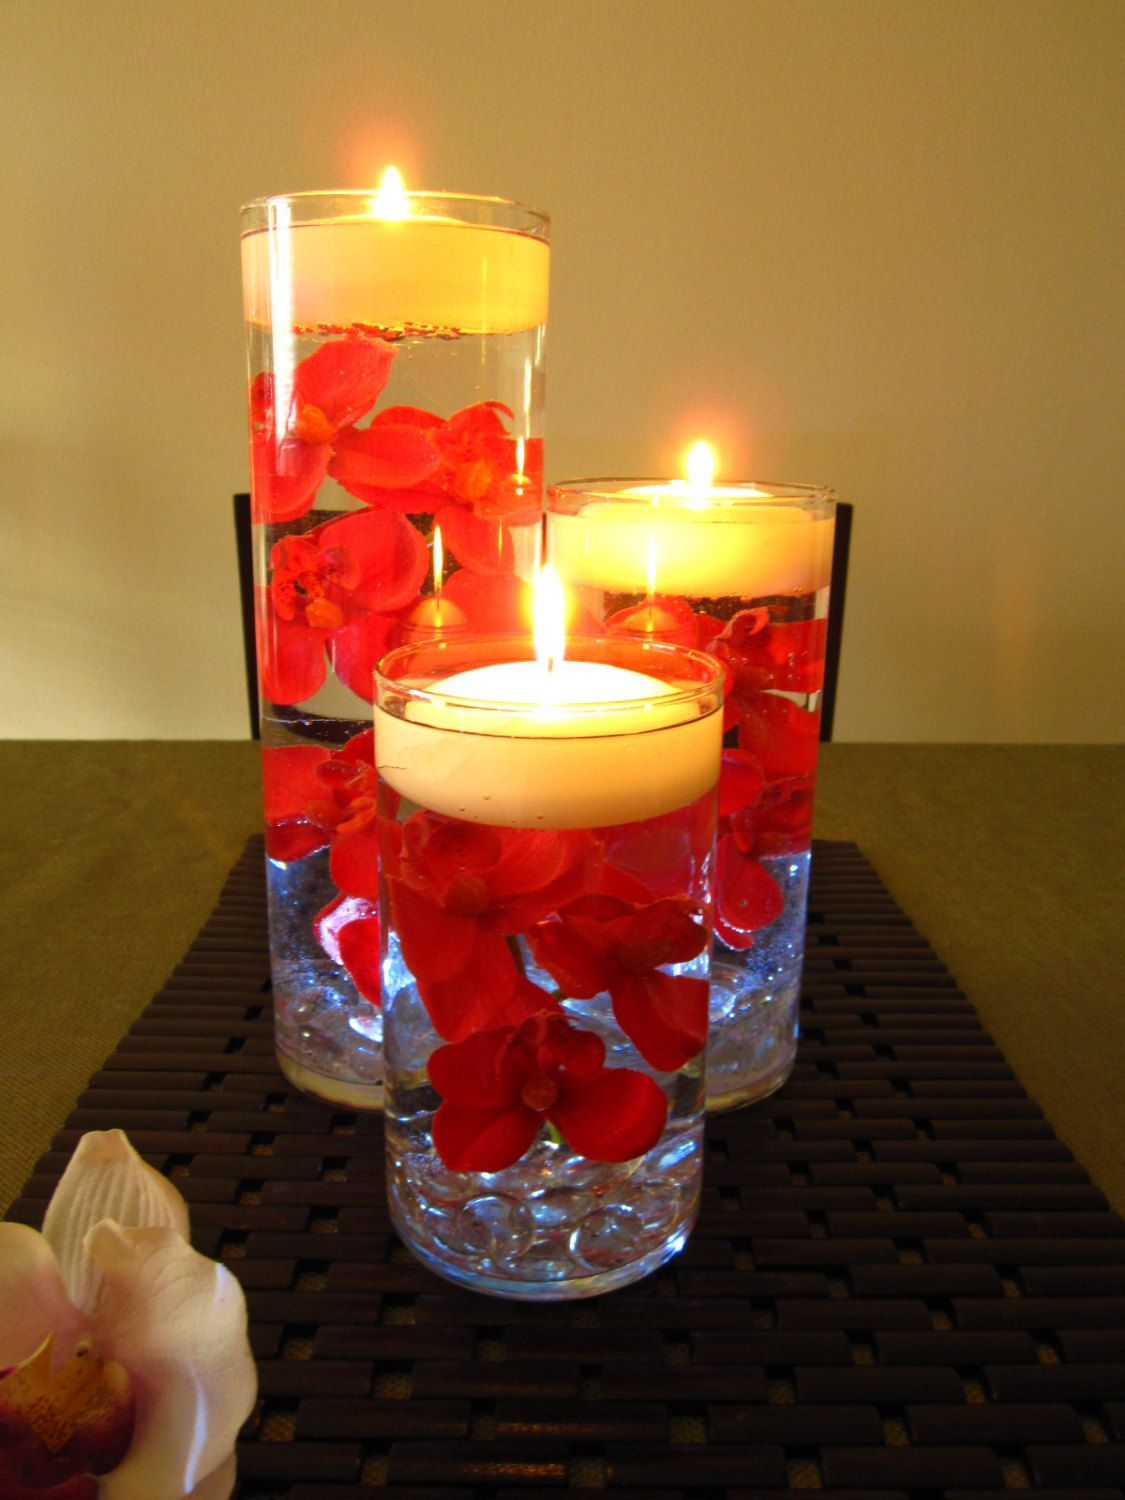 Red Orchid Floating Candle Wedding Centerpiece By Roxyinspirations 65 00 Candle Wedding Centerpieces Floating Flower Candles Floating Candles Wedding